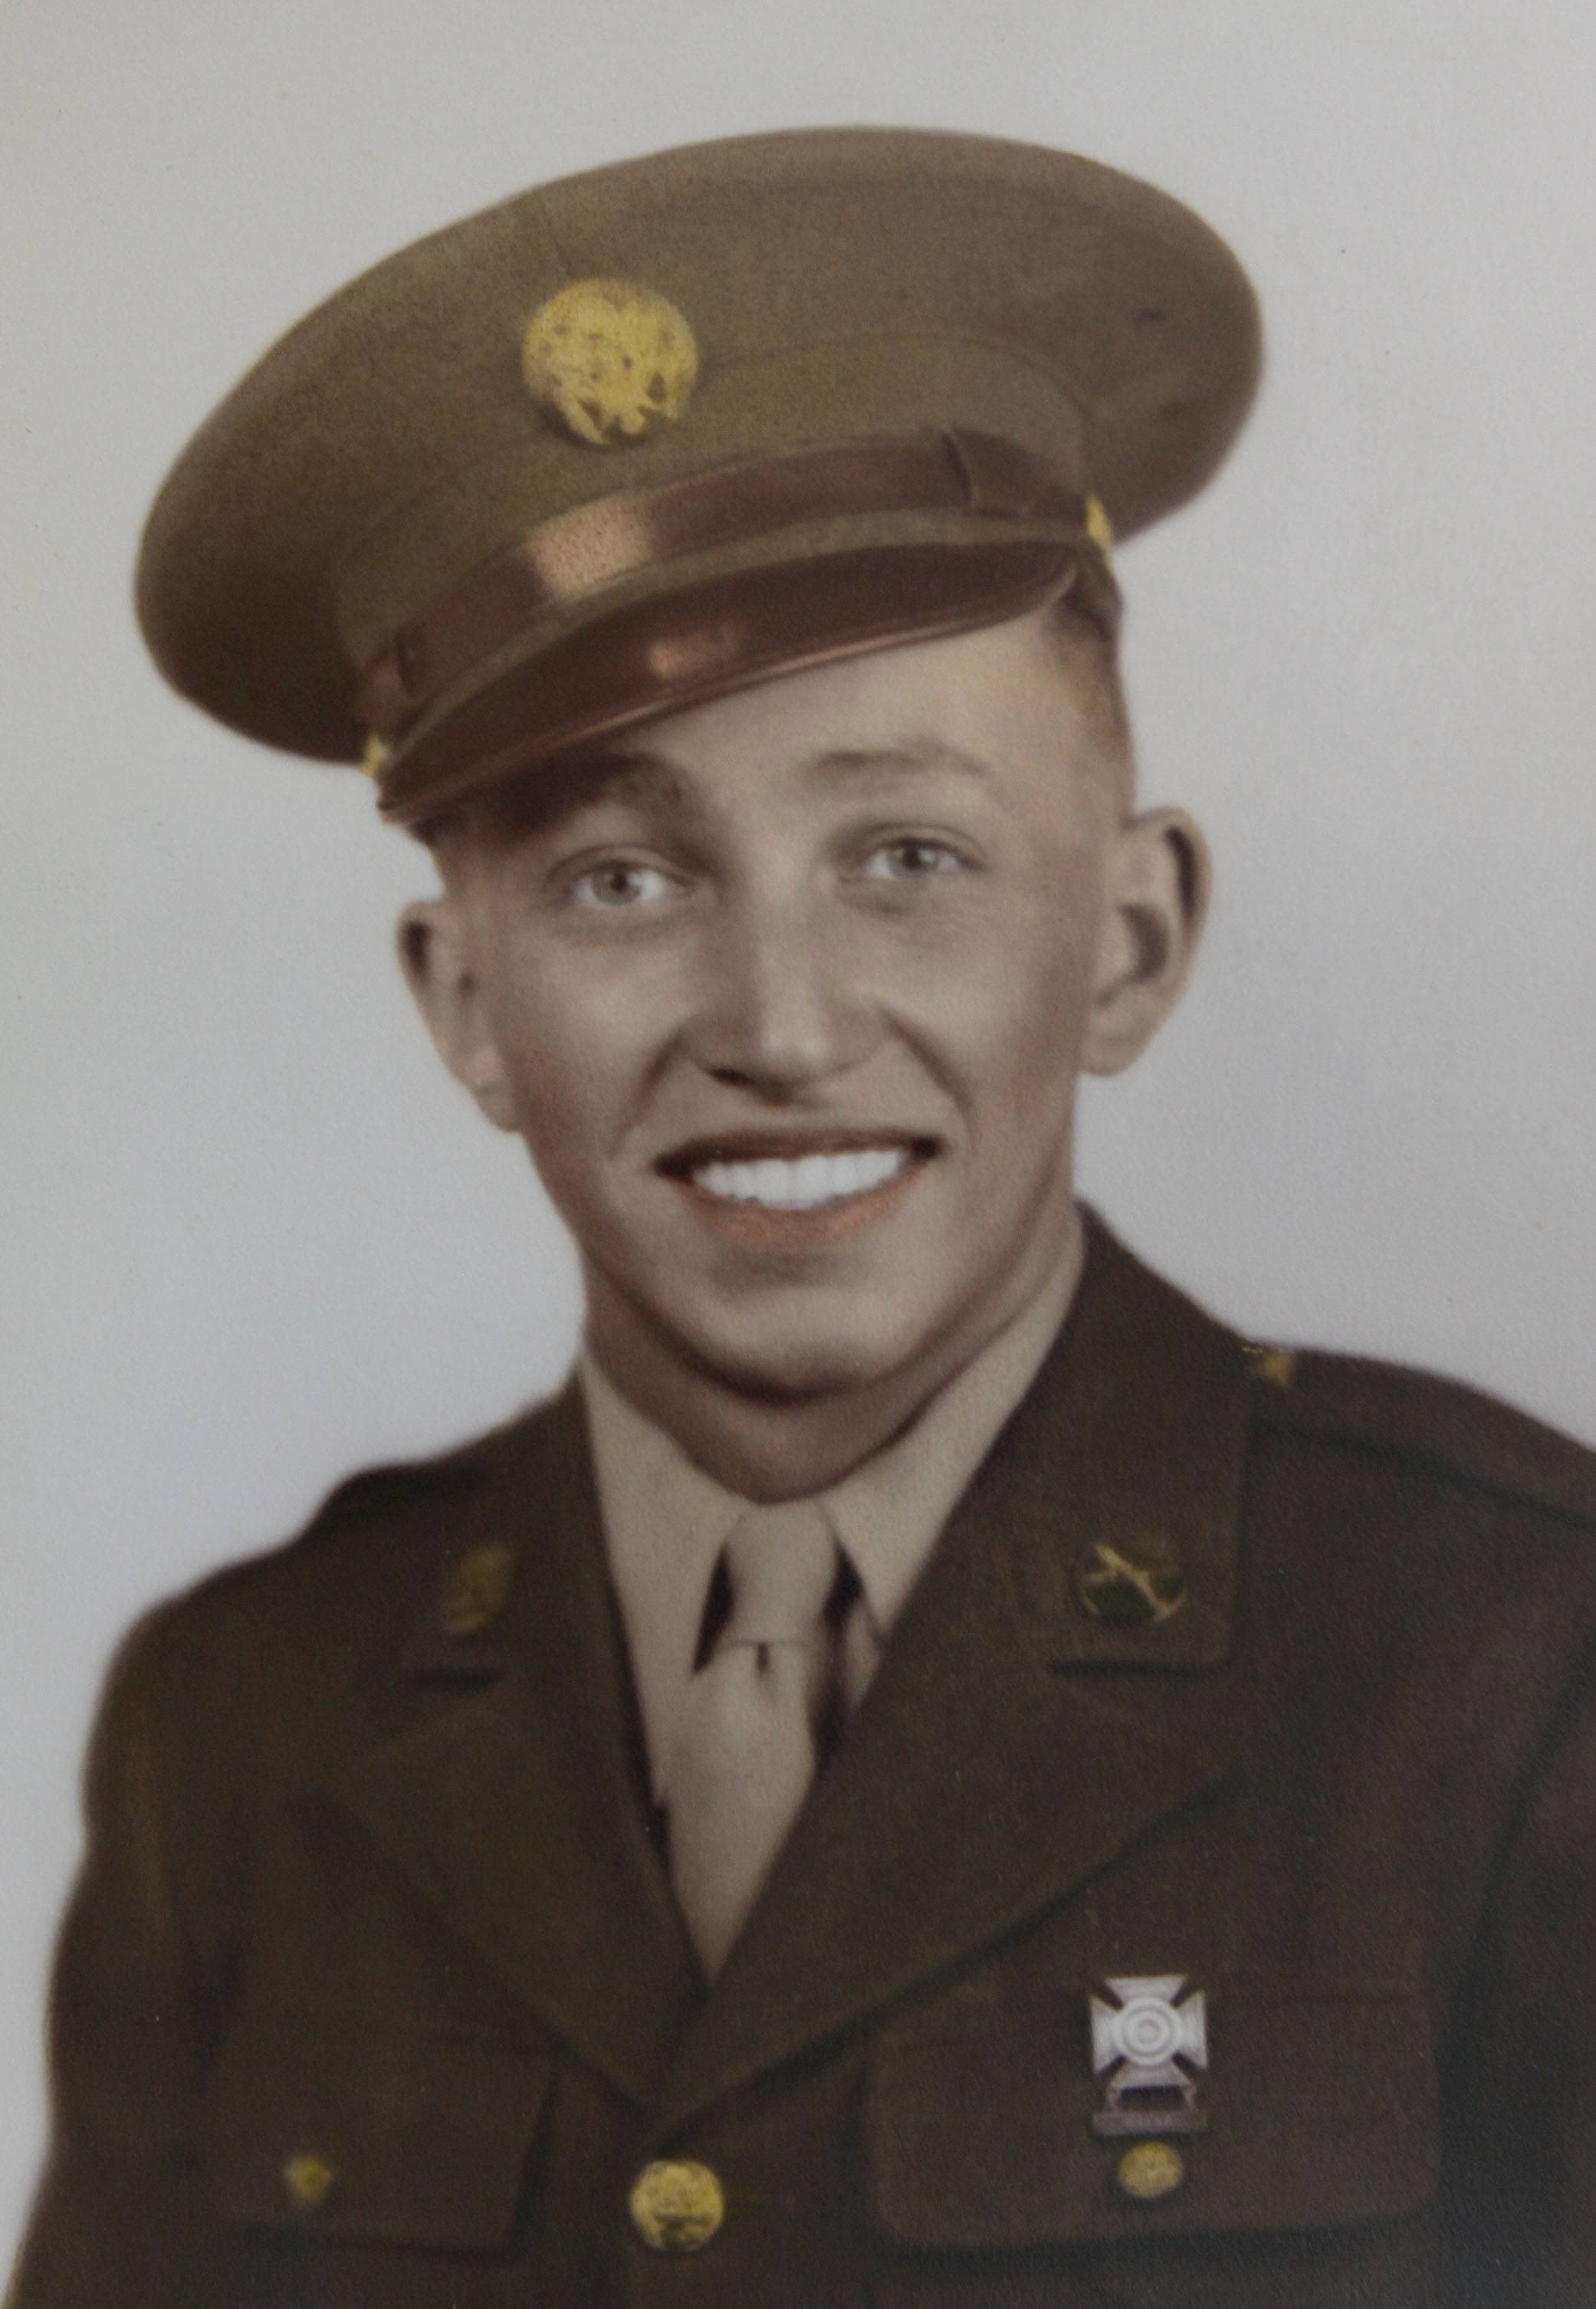 Joe Knupp of Glen Ellyn during his service in World War II.